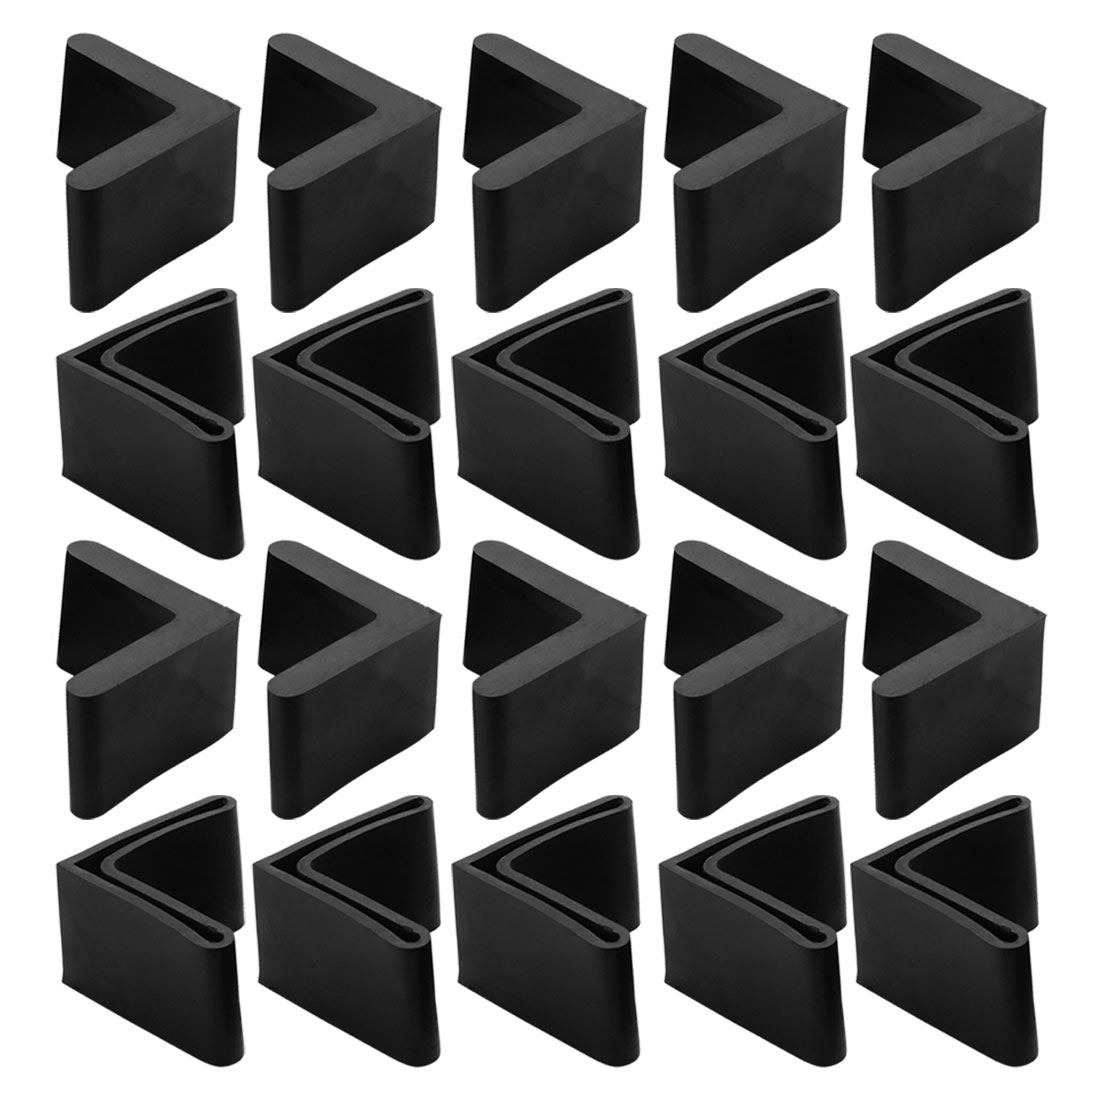 20 Pcs Triangle Shaped Furniture Table Corner Cushion Protector 40mmx40mm Black